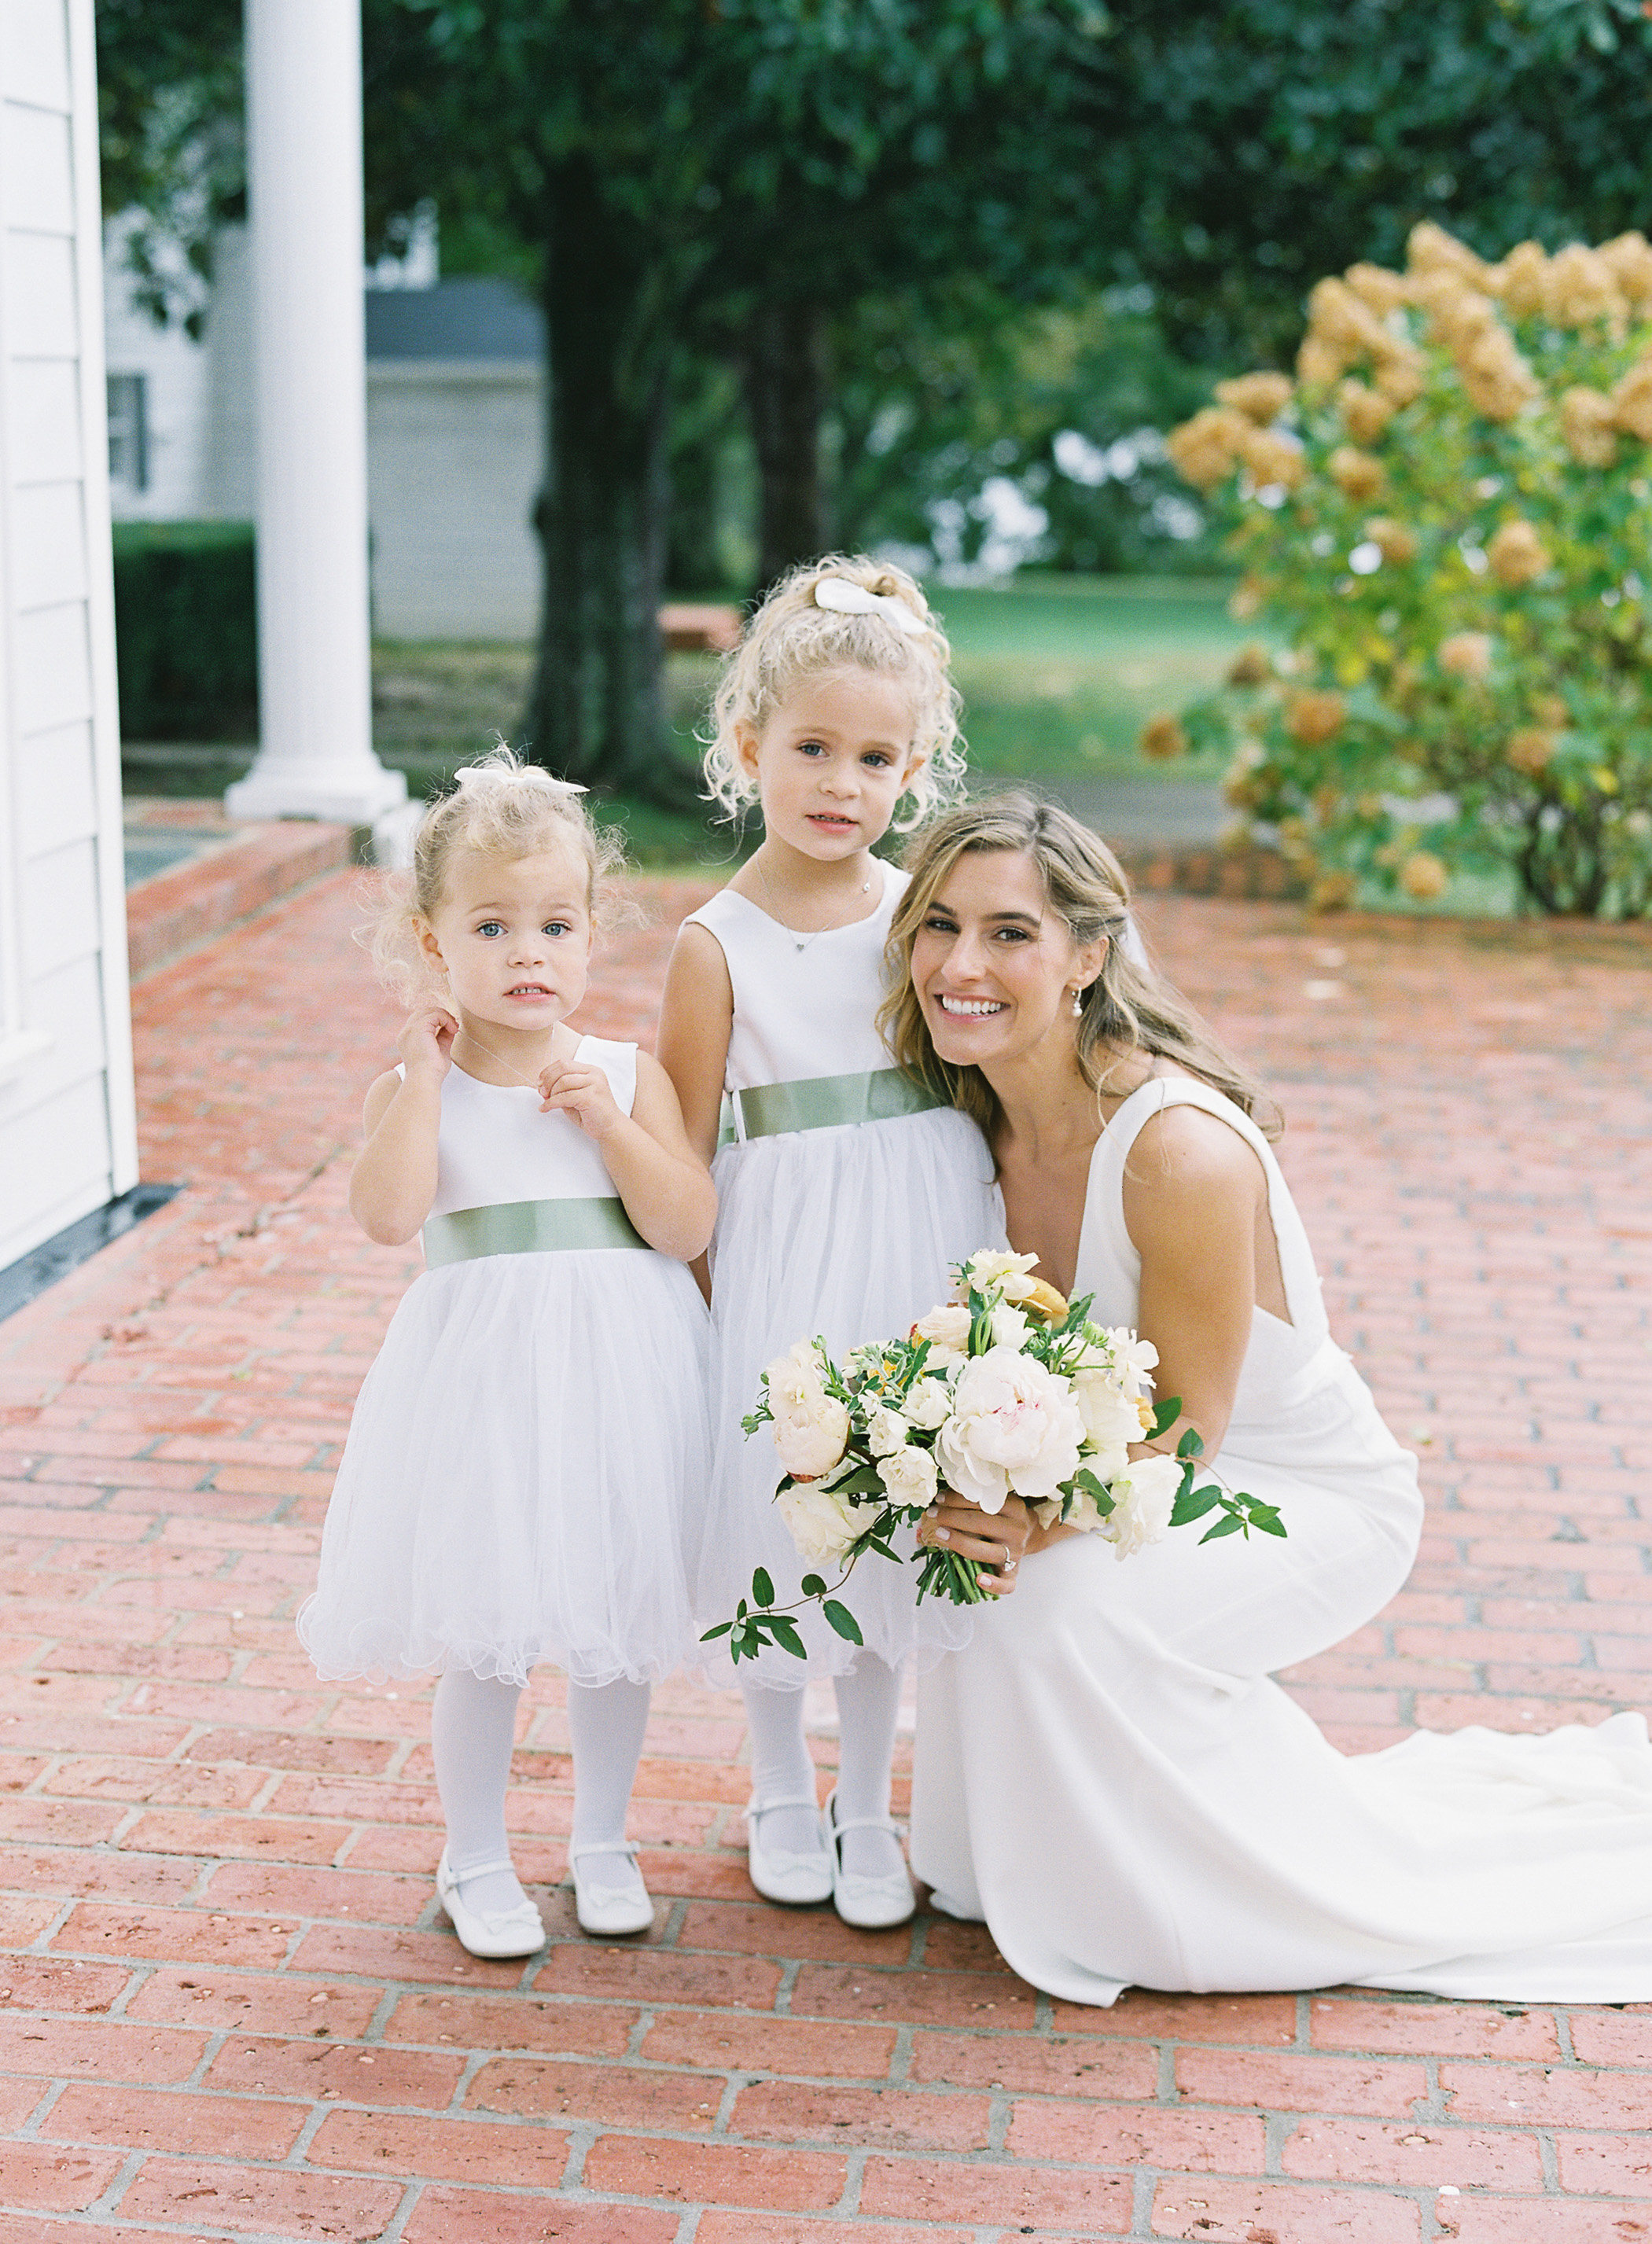 lauren alex wedding flower girls with bride